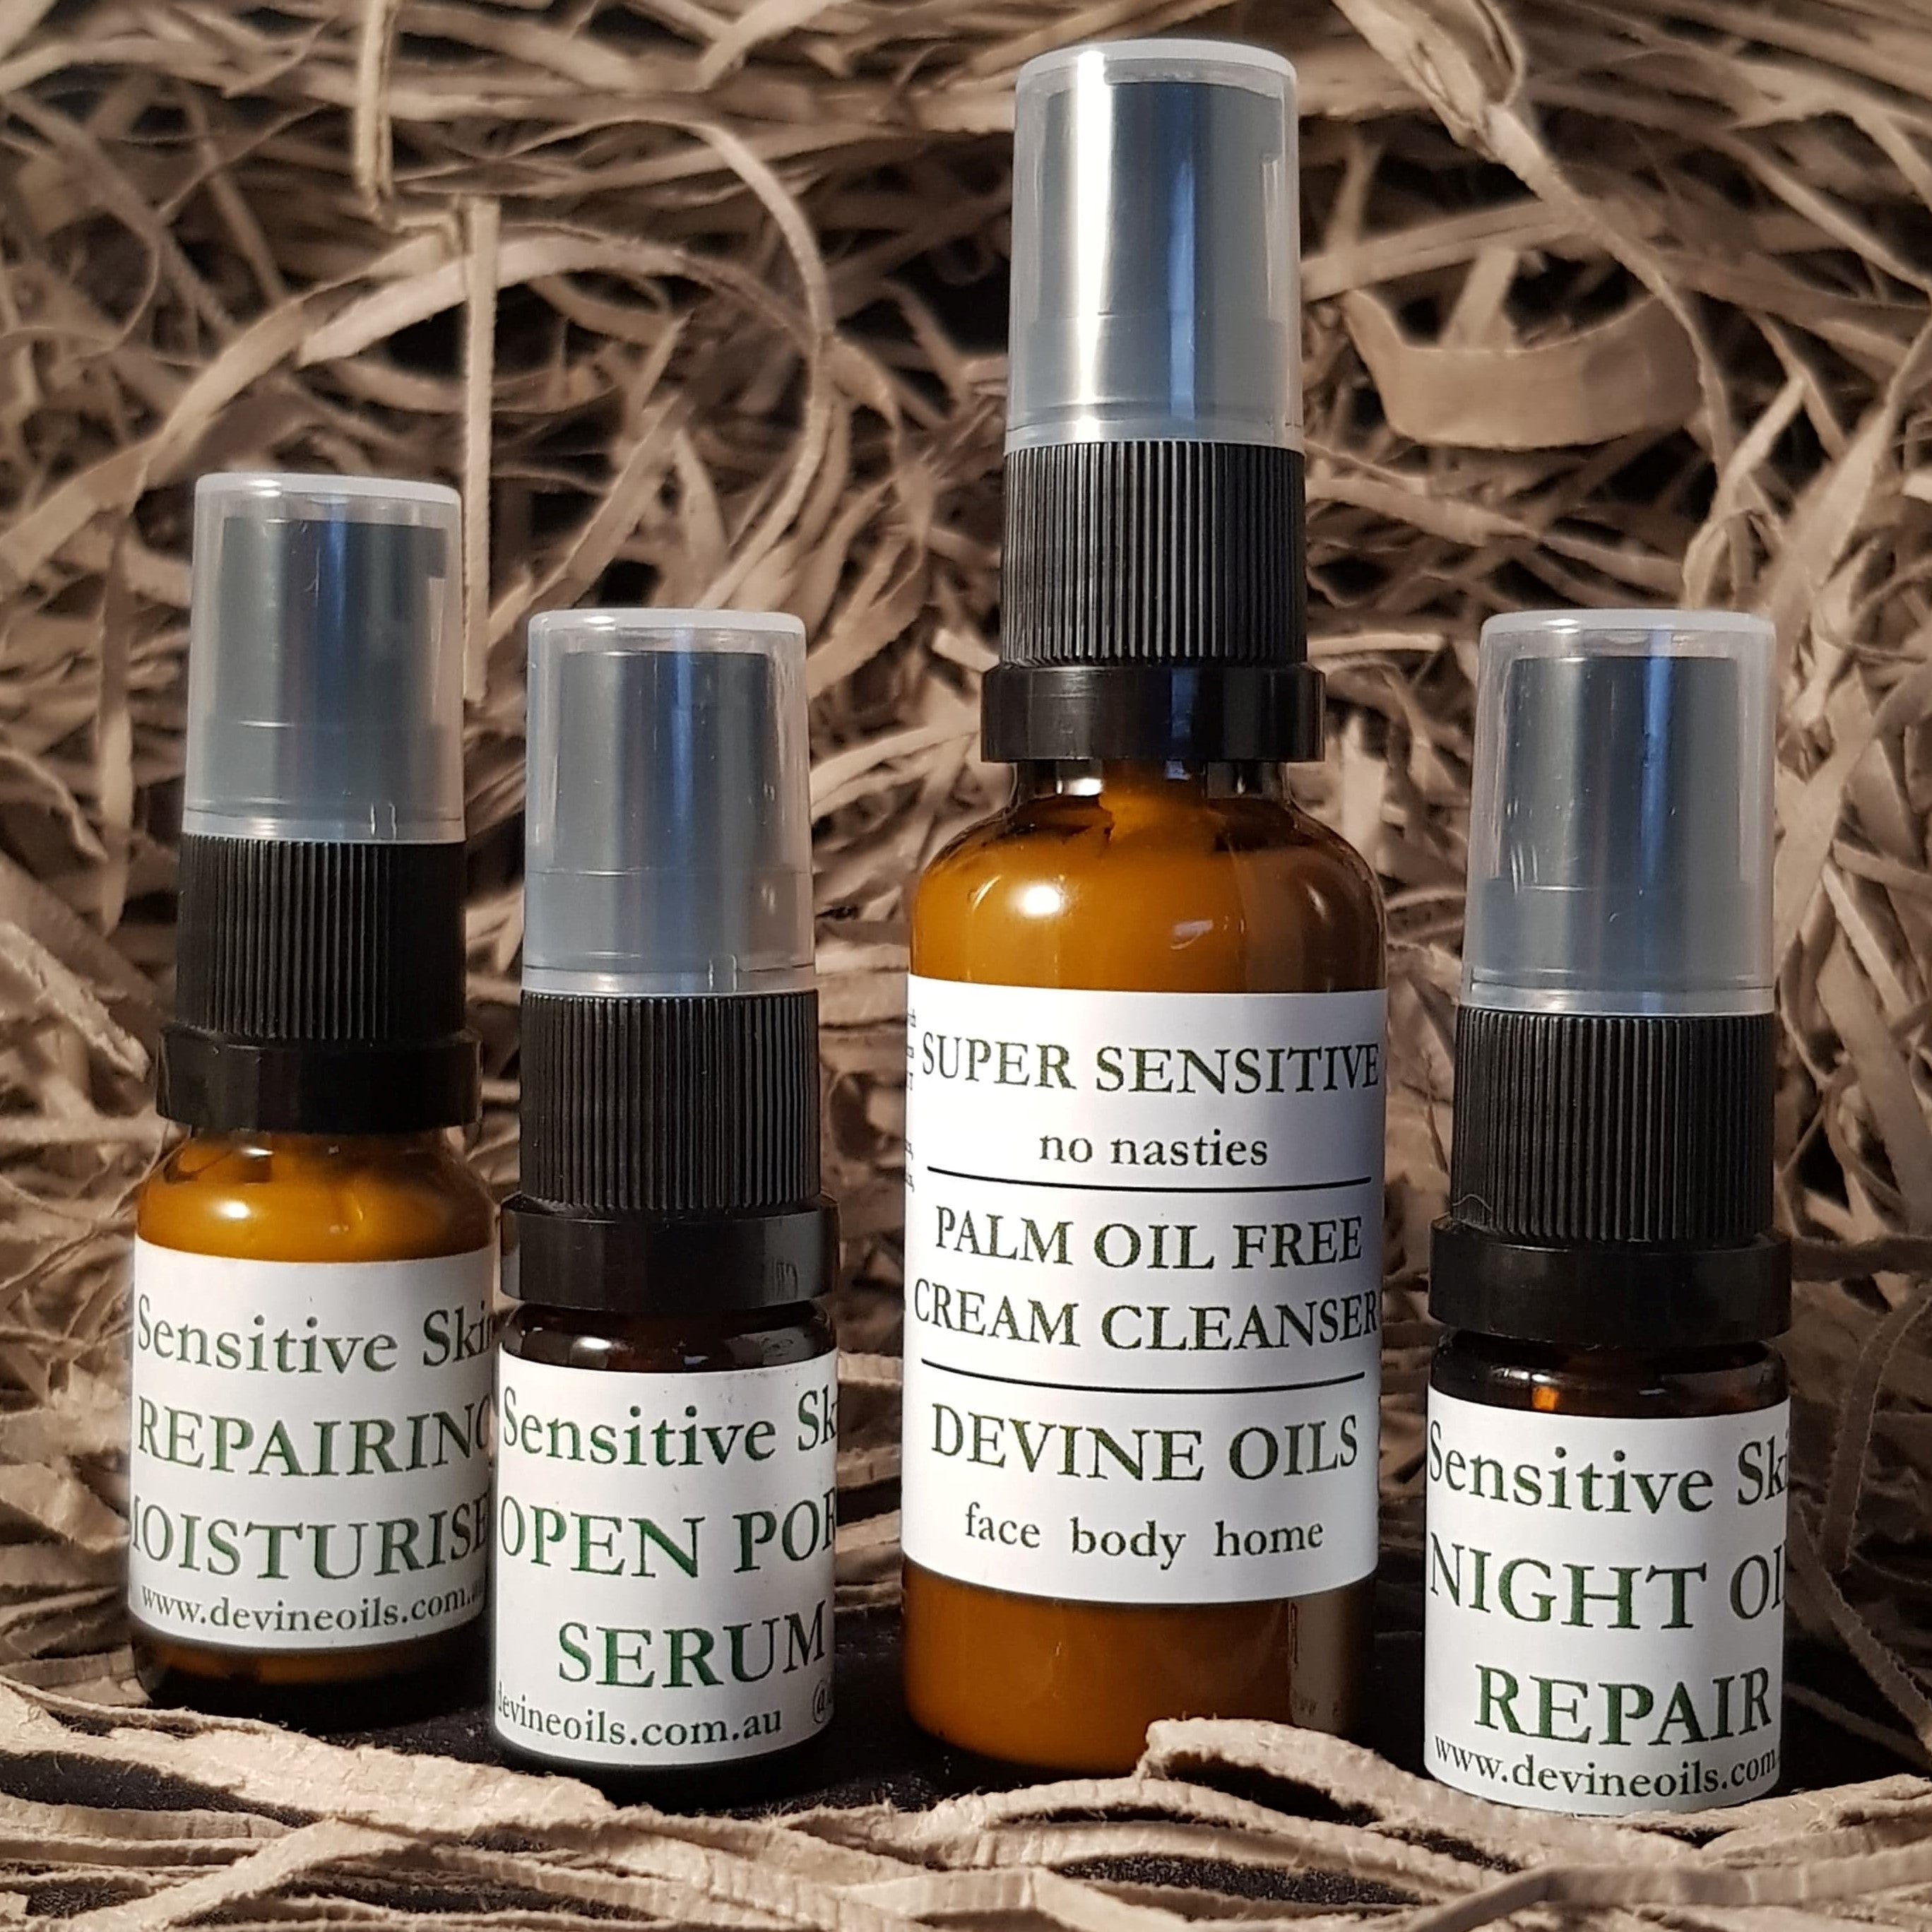 Devine Oils. Trial Skincare Set for Sensitive Skin types. Helping to calm redness, regenerate cell production, tightening pores for your skin to glow.  Palm Oil Free. Accredited Cruelty Free. 100% Plant Based Vegan Oils for face body home. Try it out and give our Plant Based Skincare a go.